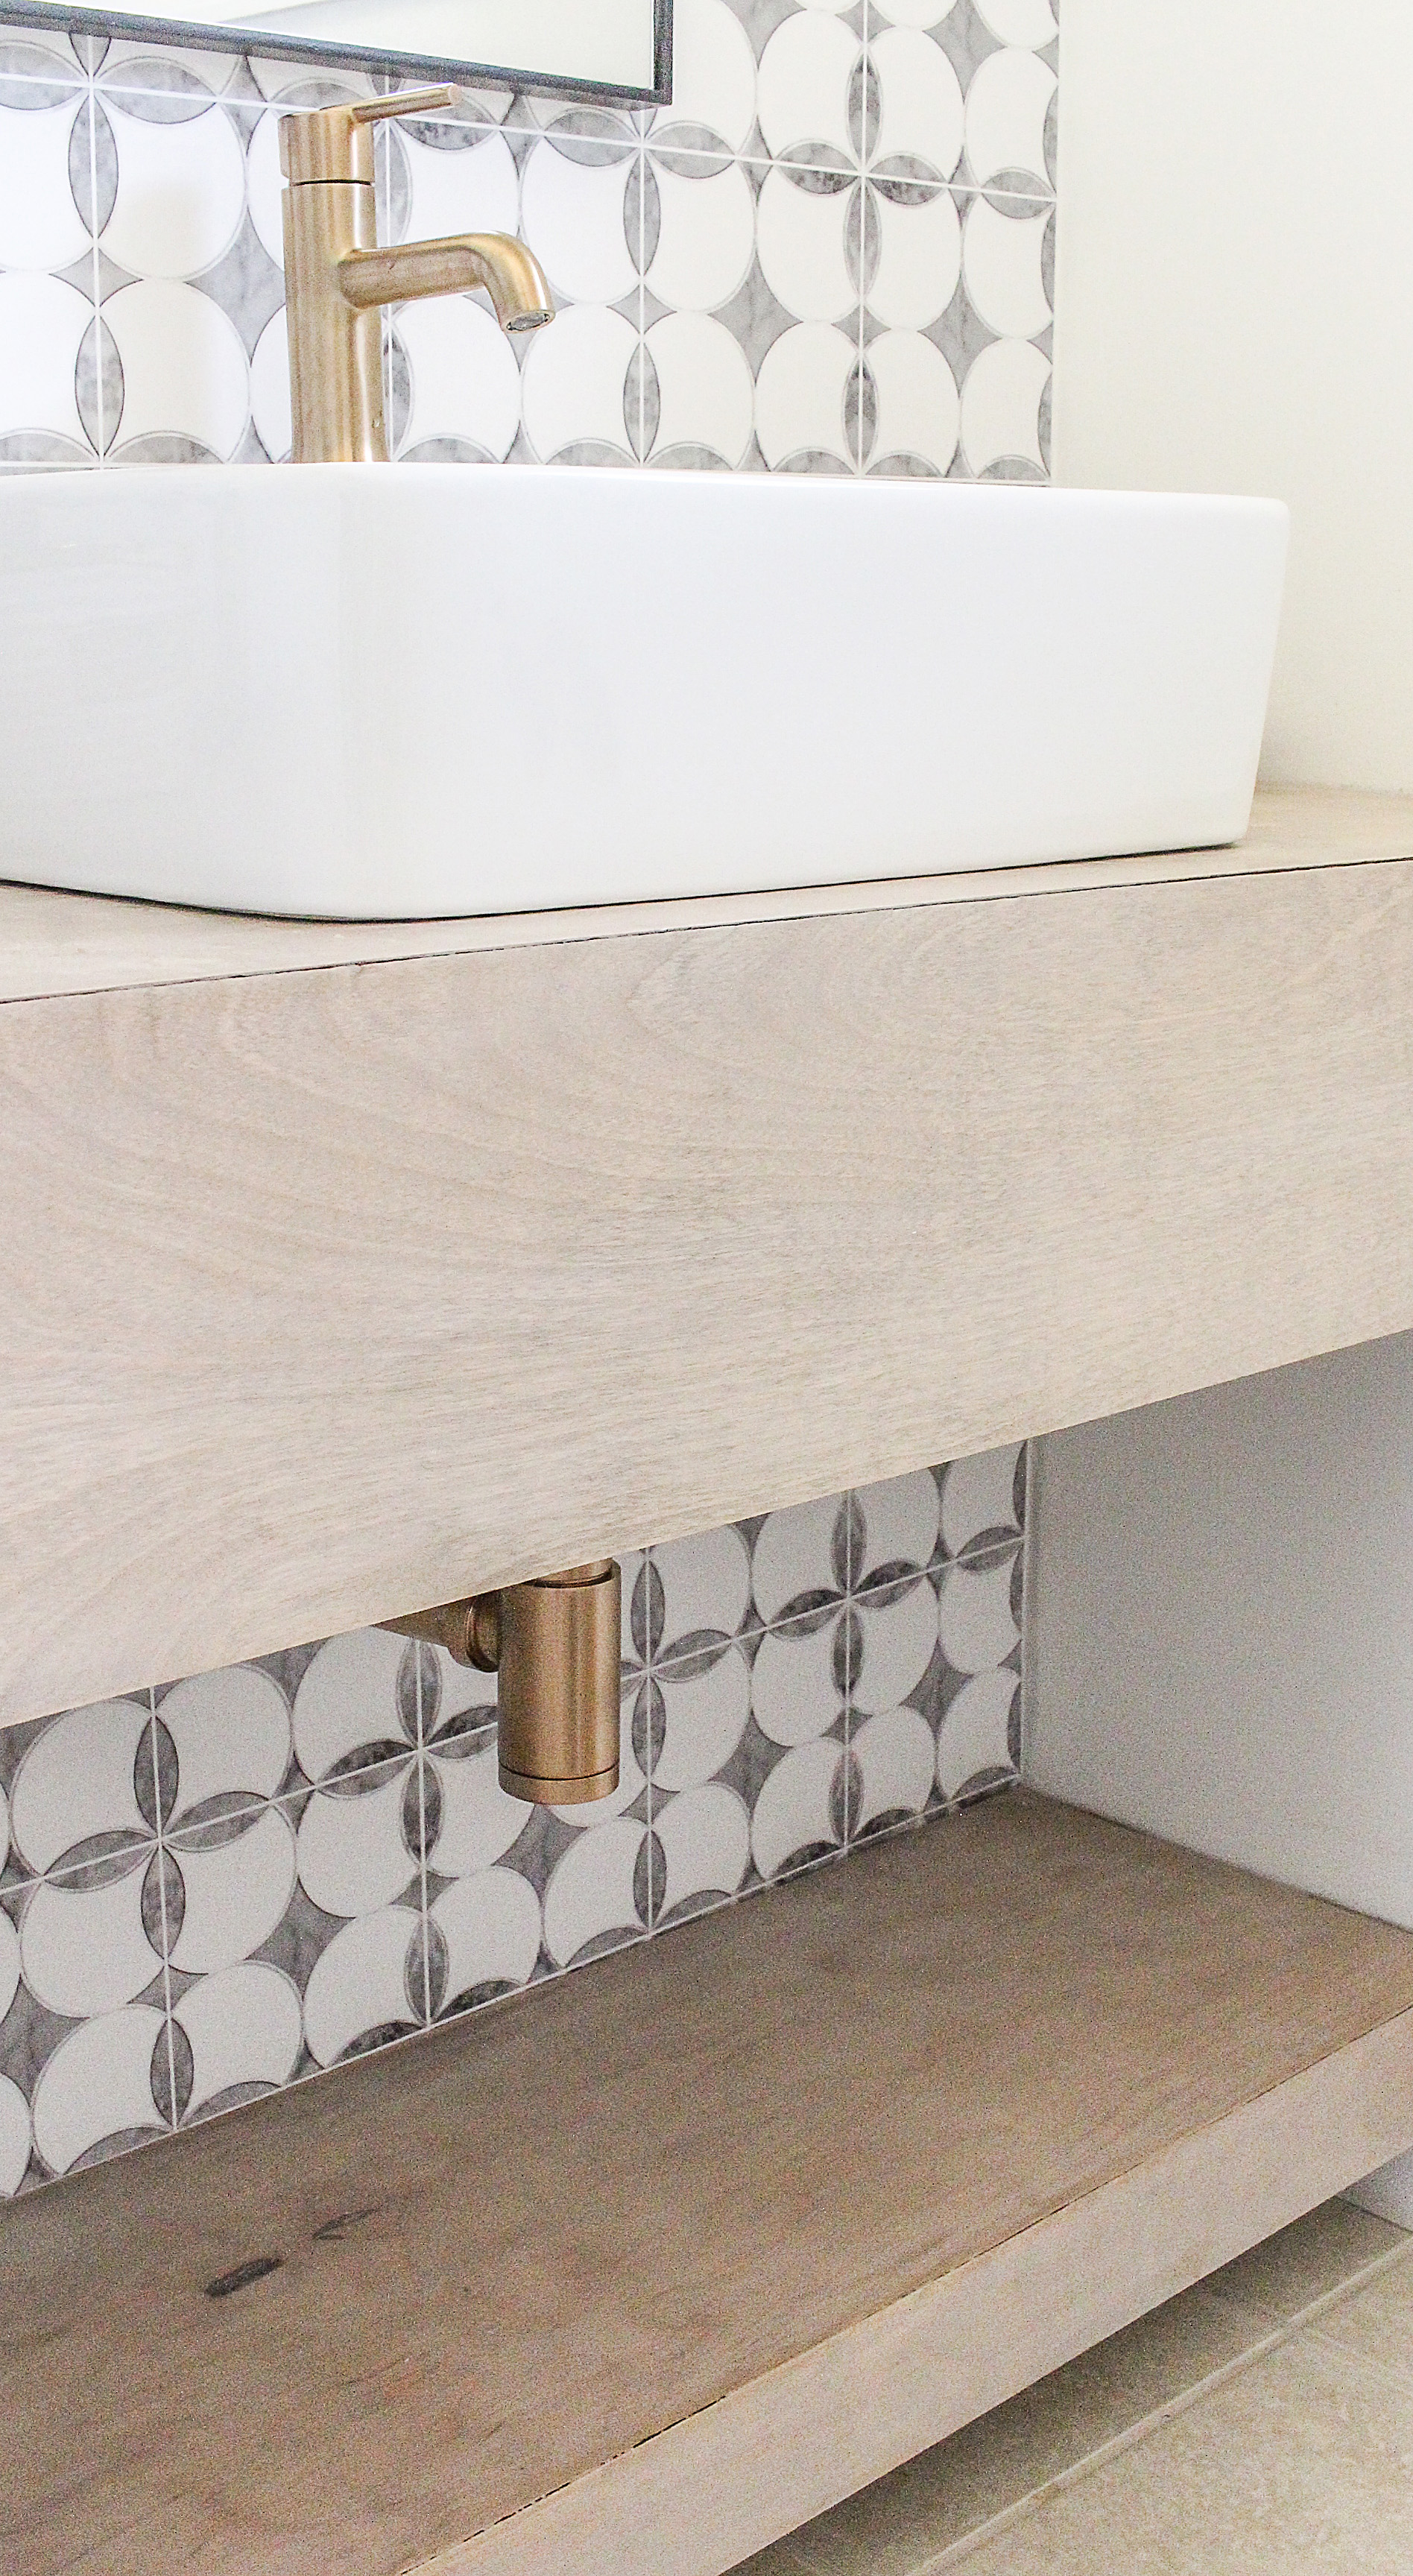 Ordinaire DIY Floating Bathroom Vanity